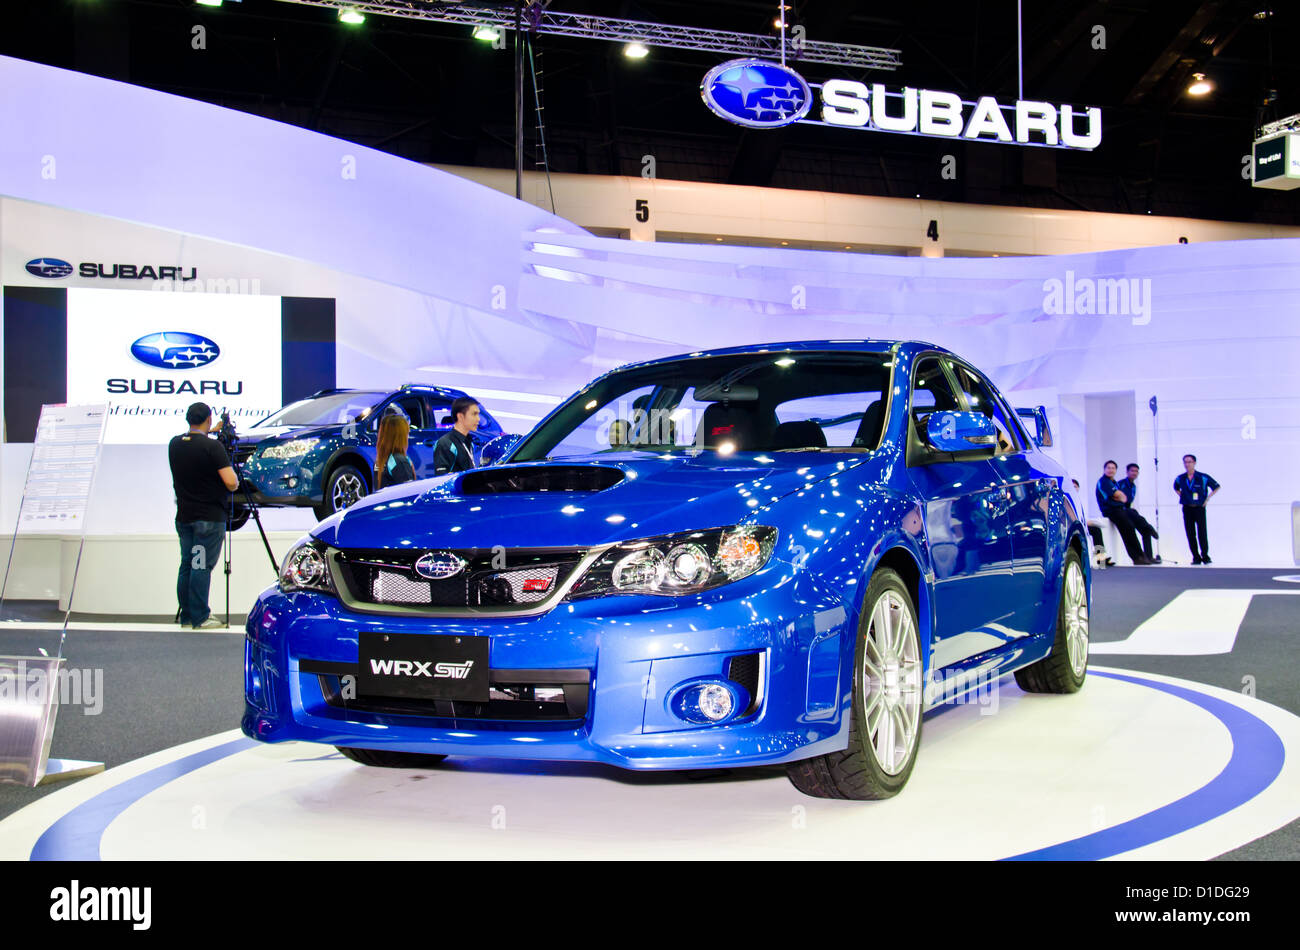 Wrx stock photos wrx stock images alamy for National motor club compensation plan